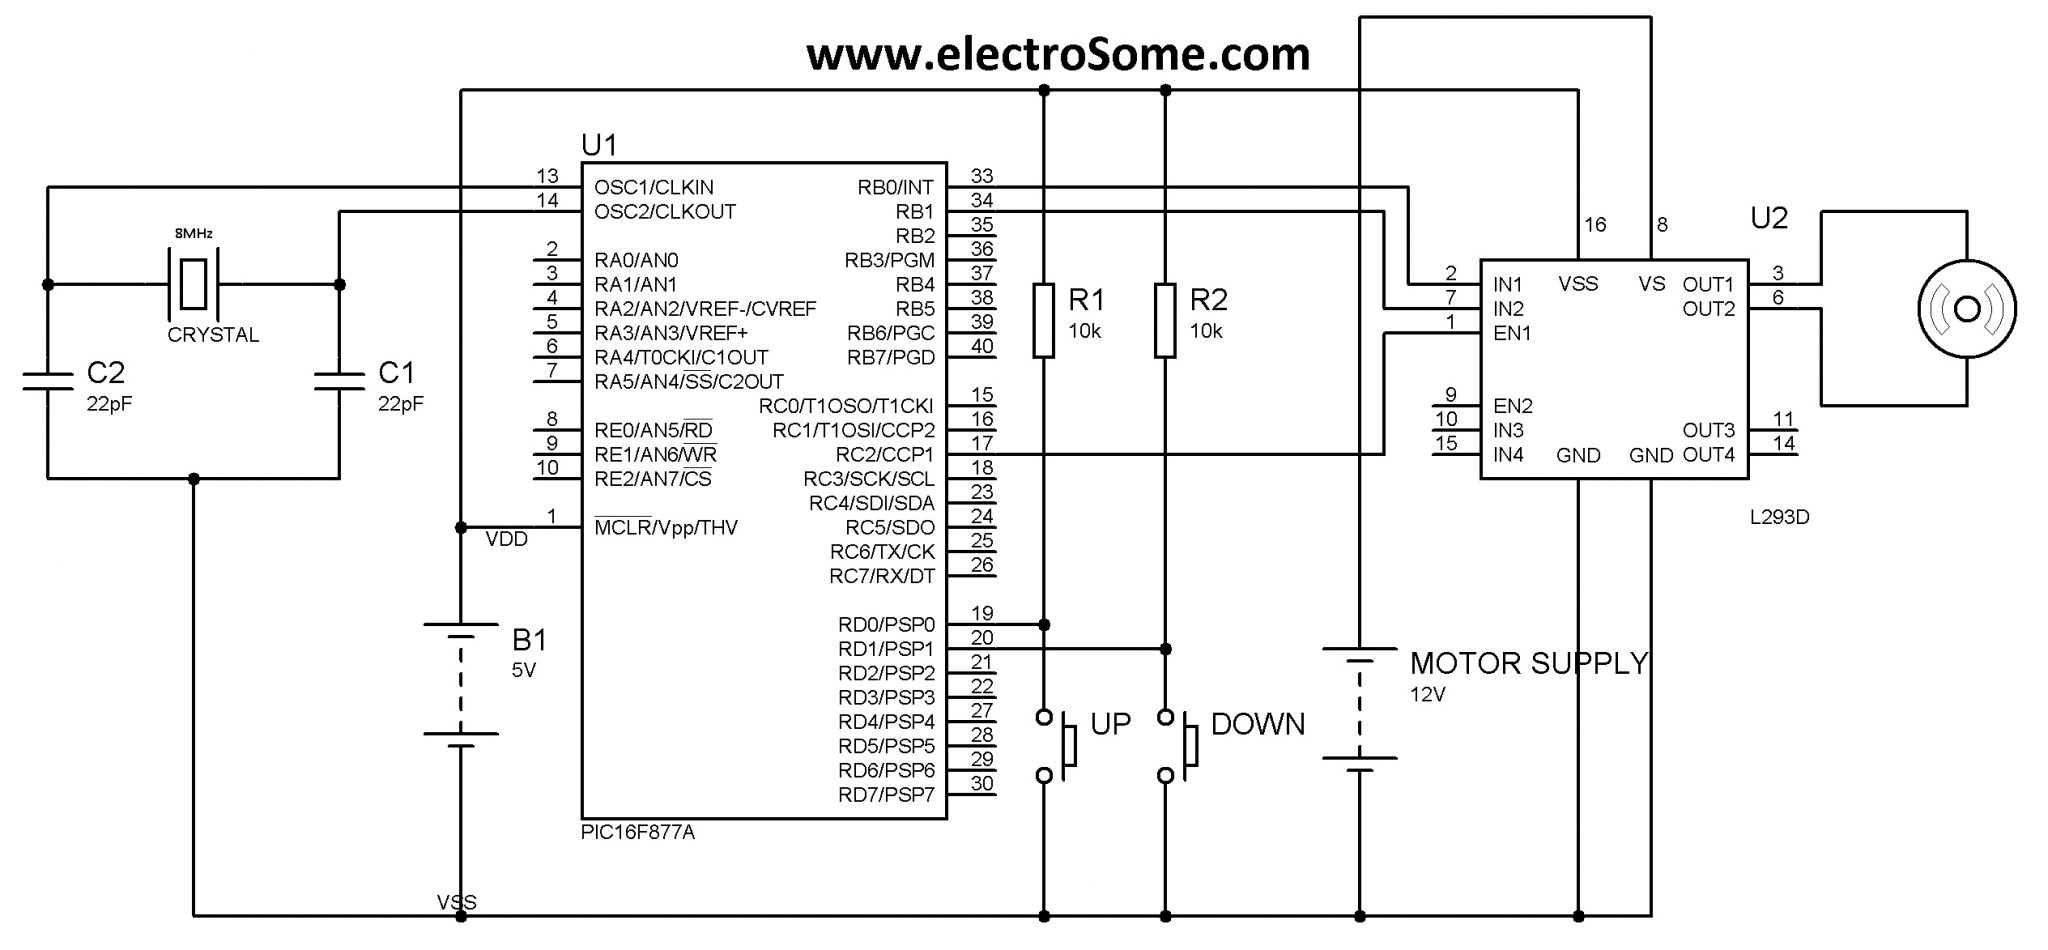 dc motor speed control using pwm with pic microcontroller mikroc rh electrosome com